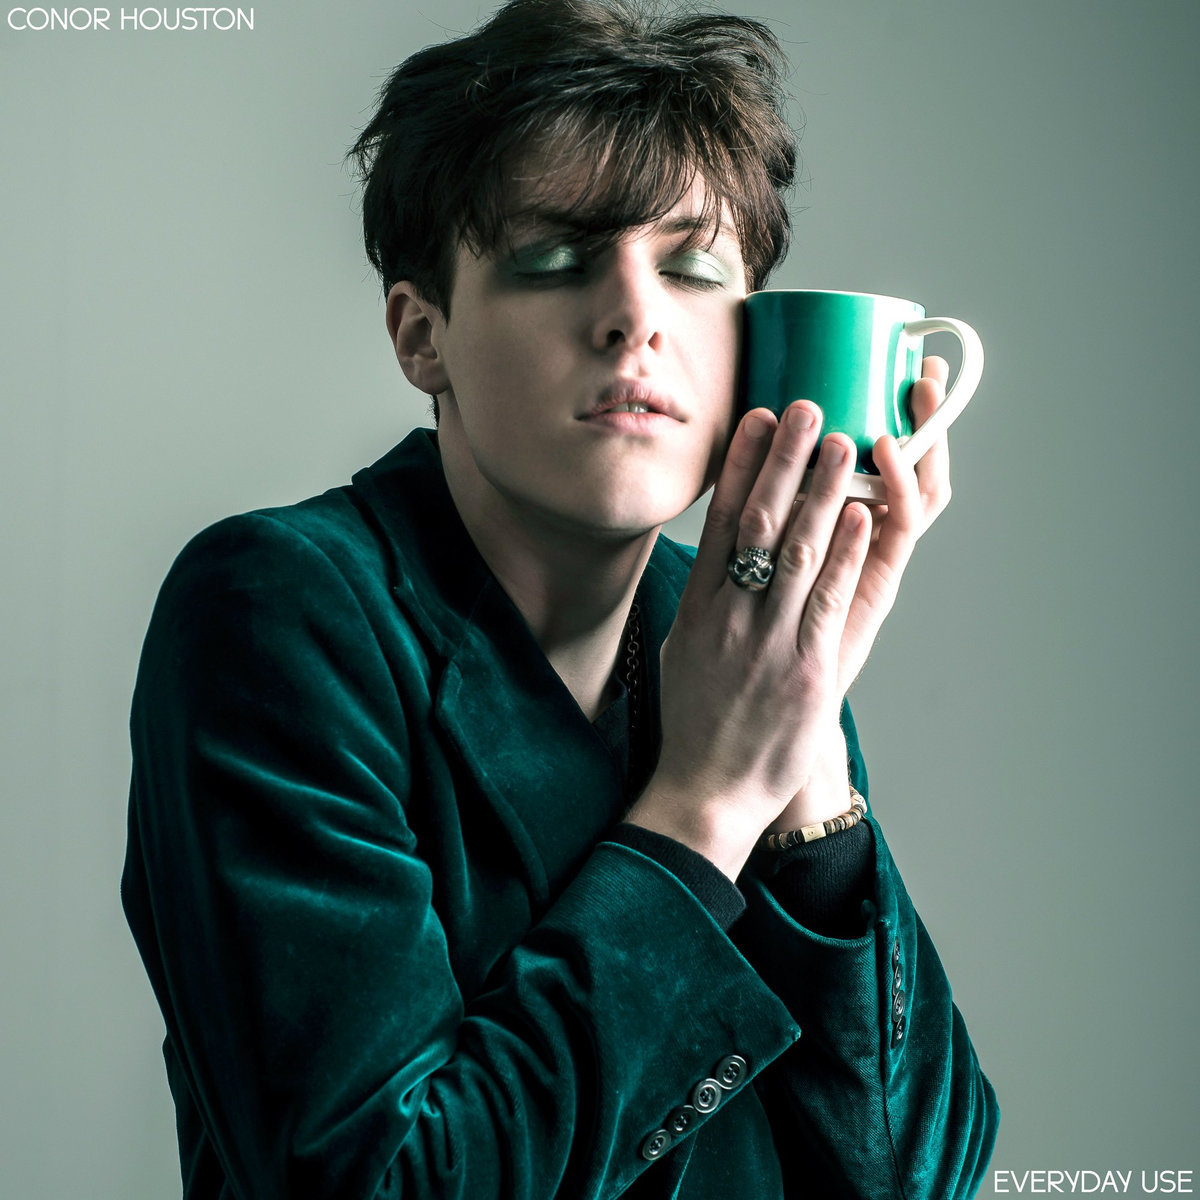 ARTIST/CONOR HOUSTON - Eclectic British singer-songwriter, known for his flamboyant (and sometimes downright weird) performances. Conor's tongue-in cheek lyricism makes for exuberant pop/rock songs imbued with influences from the 70s and 80s.Check out the mercurial world of Conor Houston below…